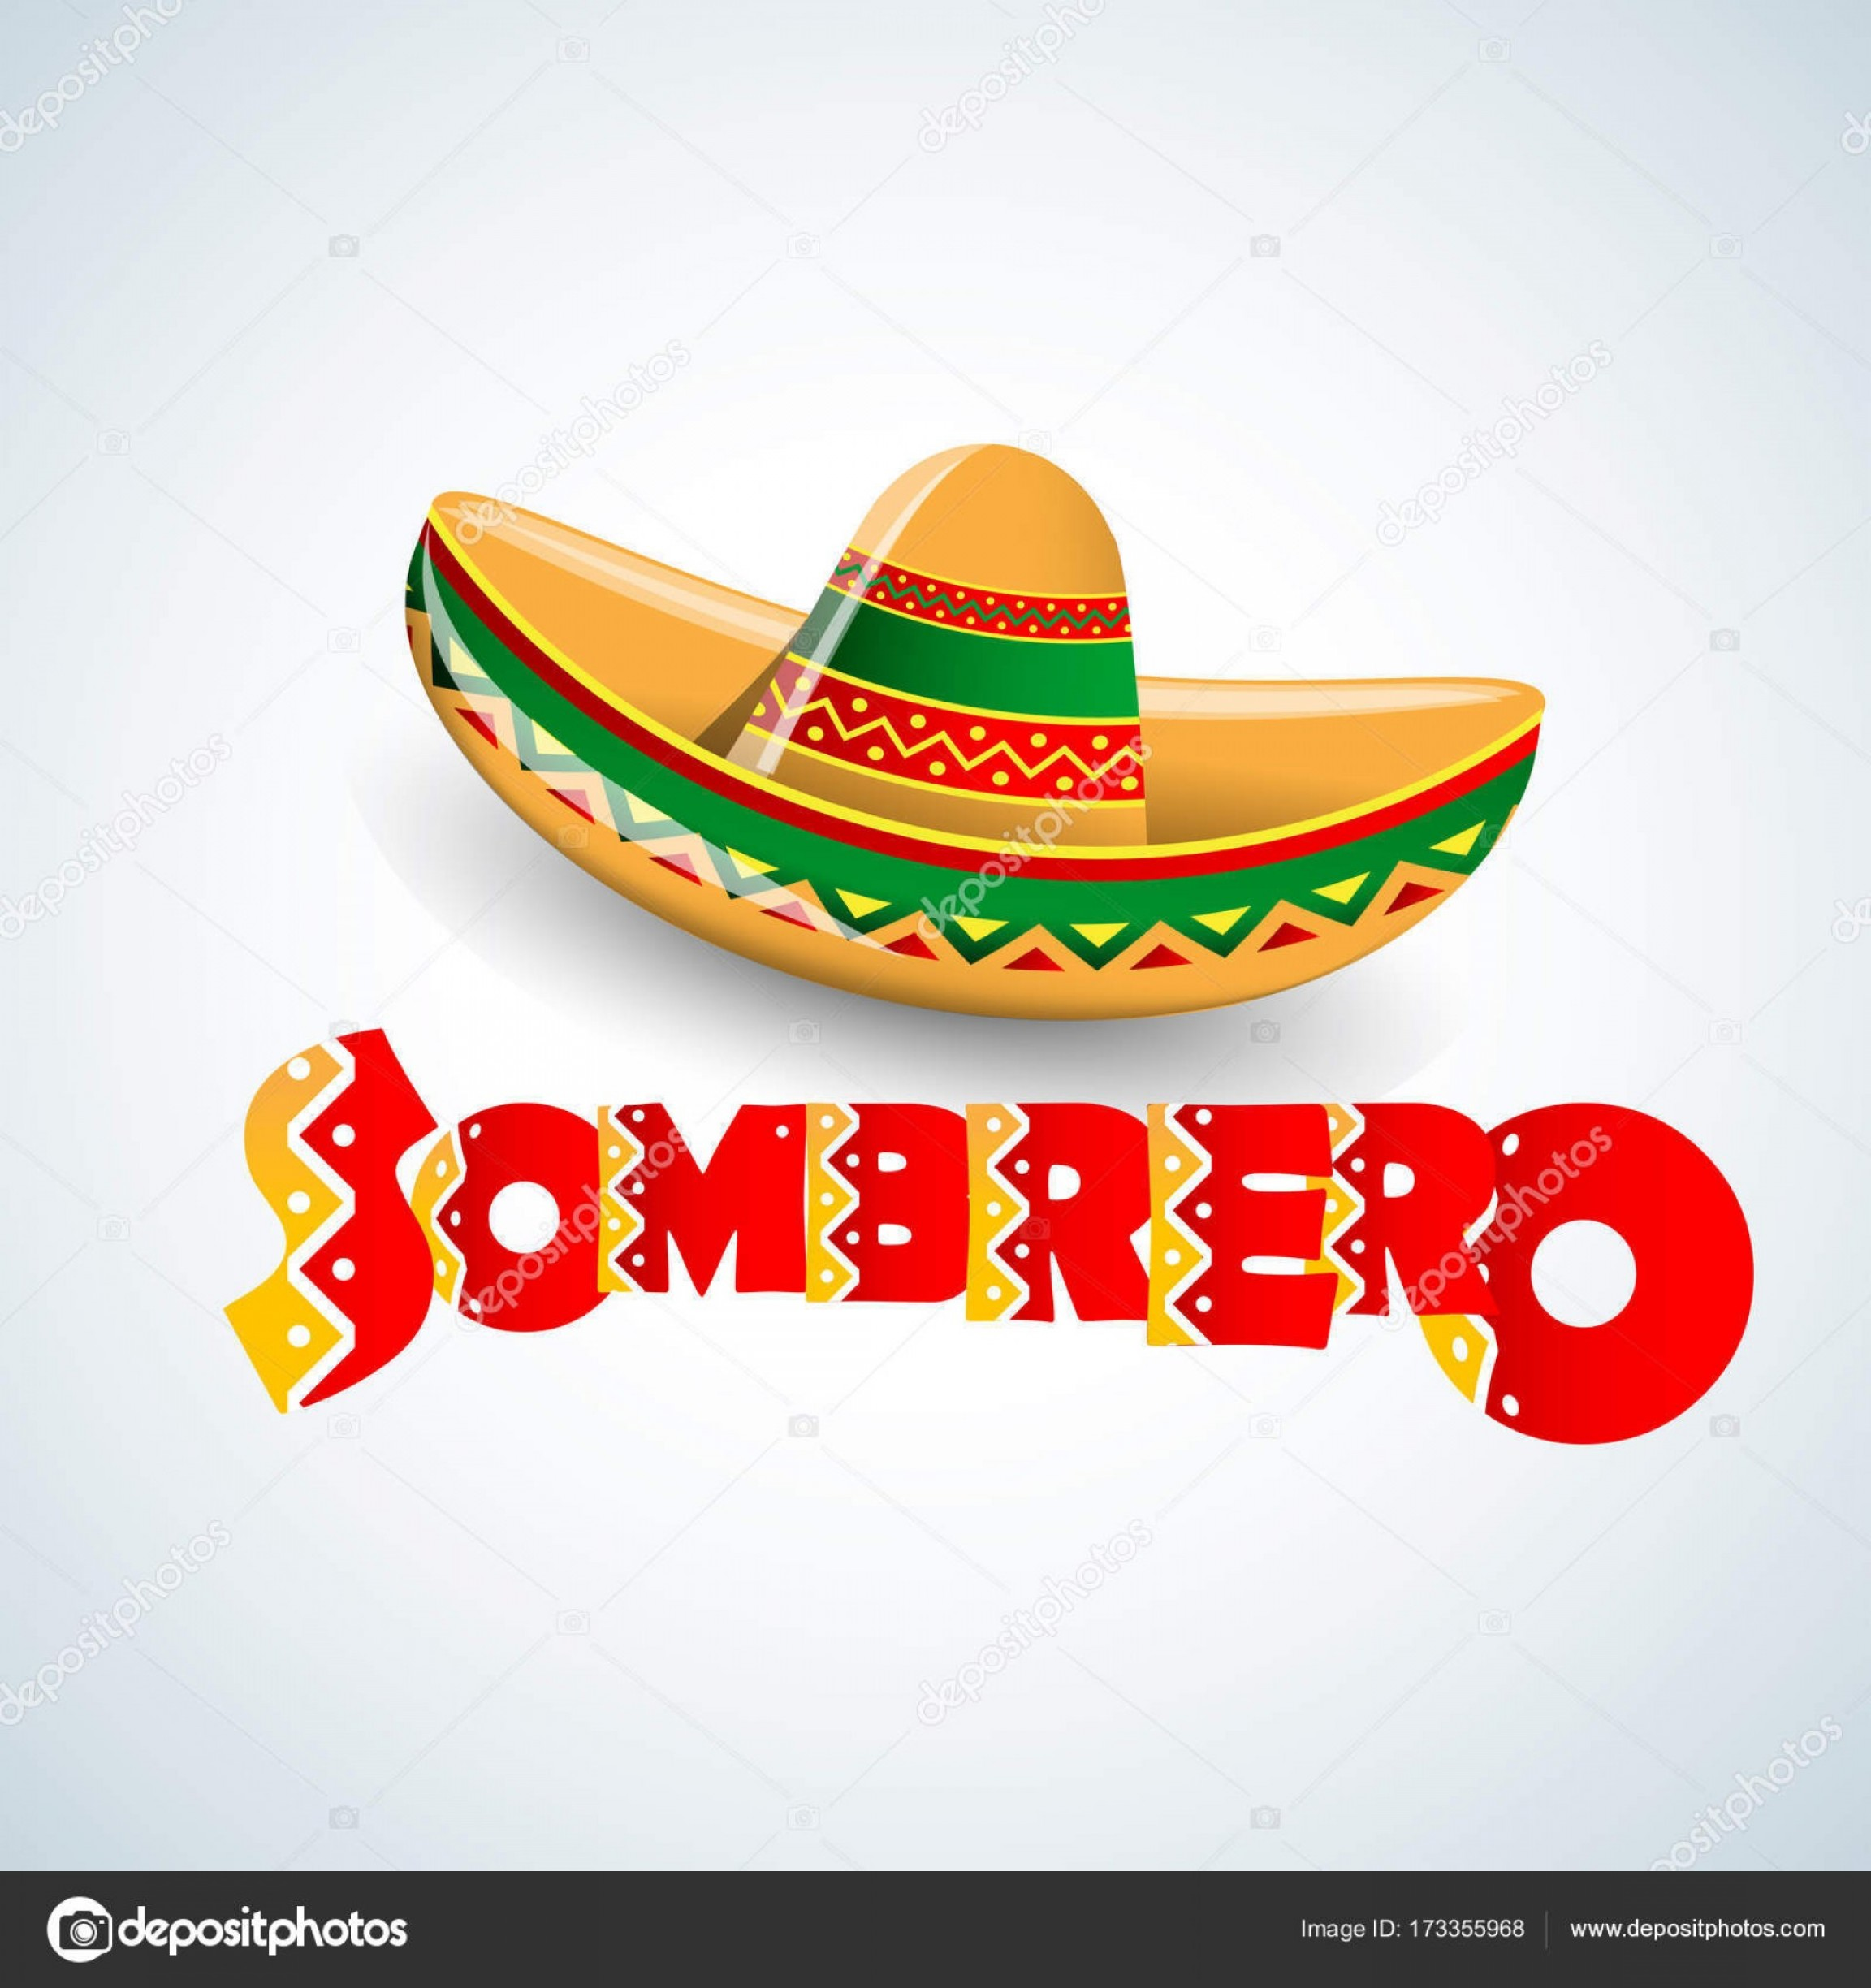 Sombrero Hat Vector: Stock Illustration Sombrero Hat Vector Illustration Mexican